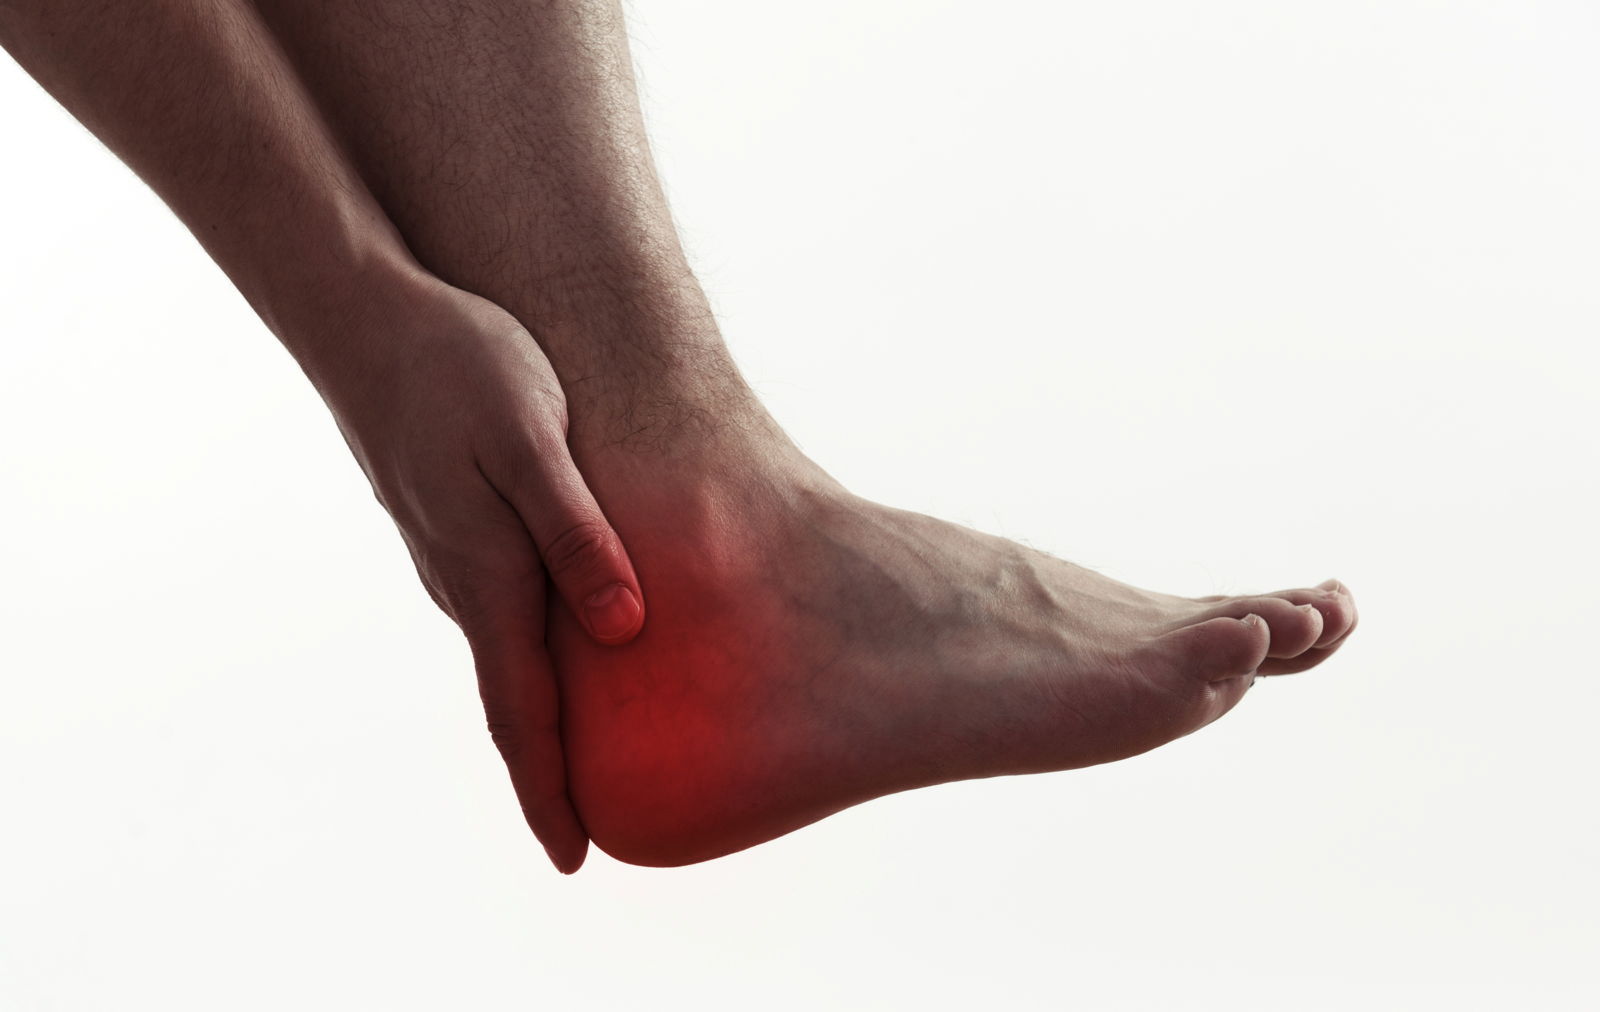 Don't let sore, cracked heels ruin your holiday season!